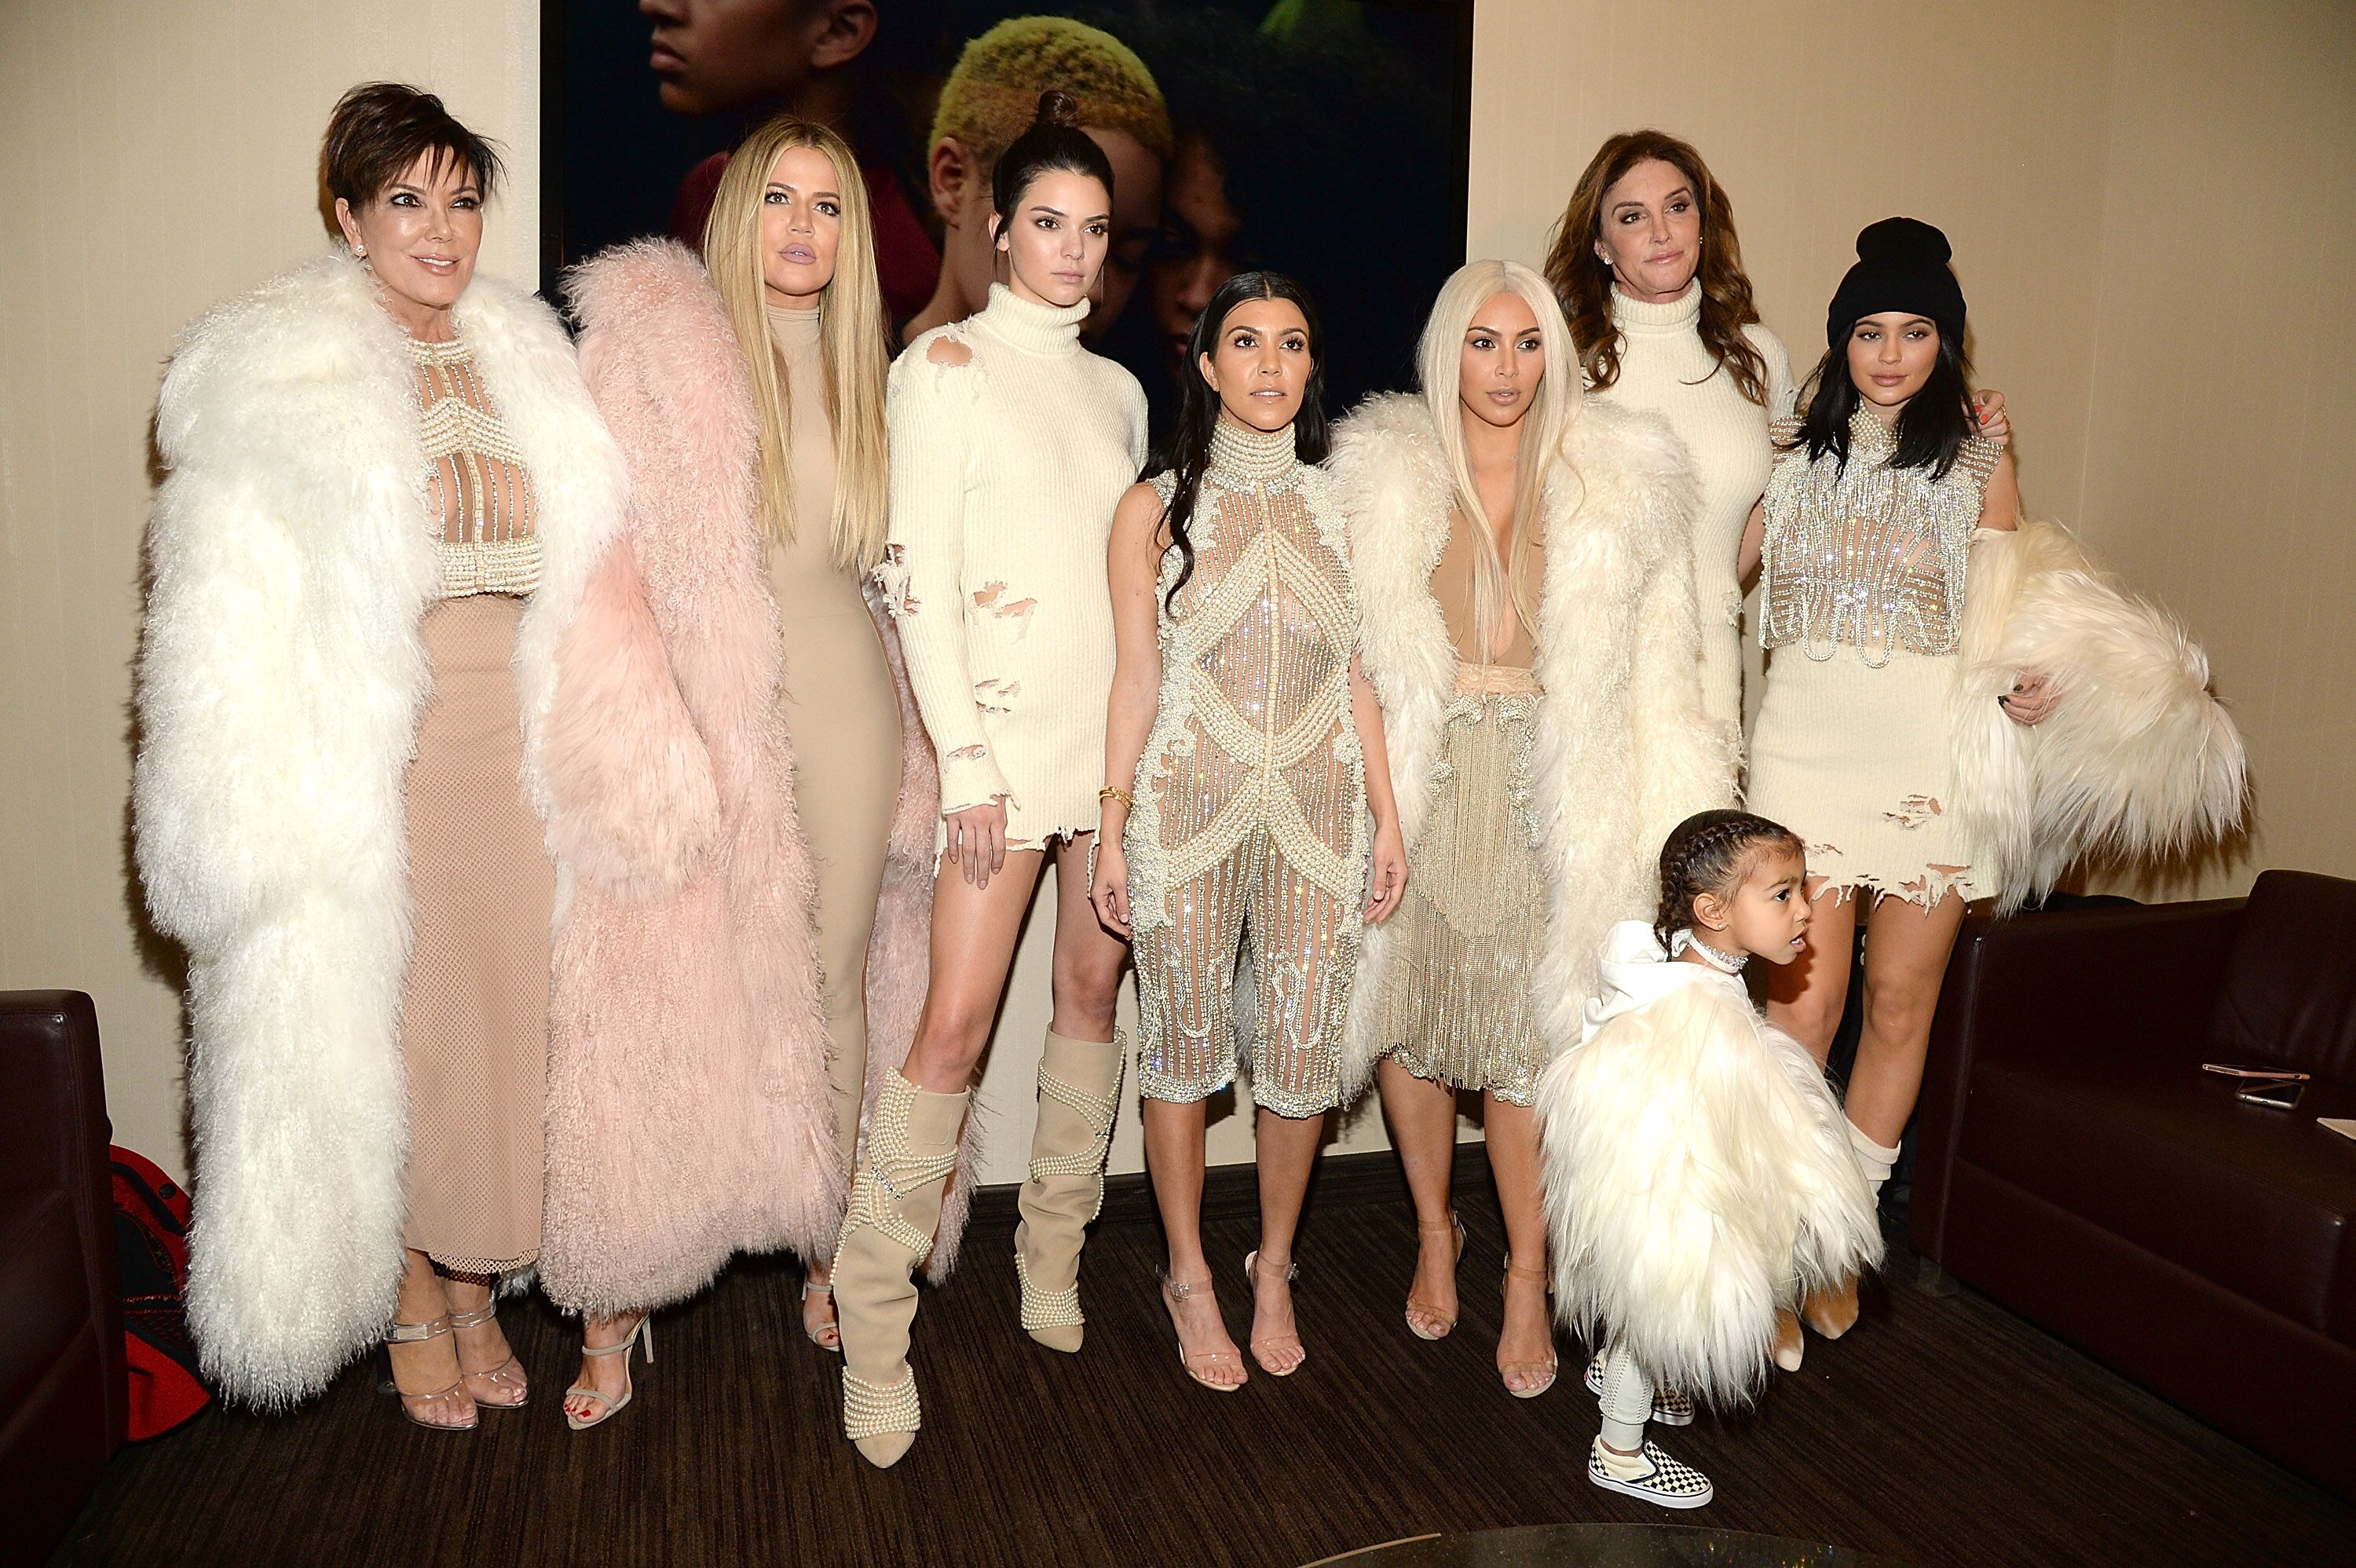 Khloe Kardashian, Kris Jenner, Kendall Jenner, Kourtney Kardashian, Kim Kardashian West, North West, Caitlyn Jenner and Kylie Jenner attend Kanye West Yeezy Season 3 at Madison Square Garden | Getty Images / Global Images Ukraine